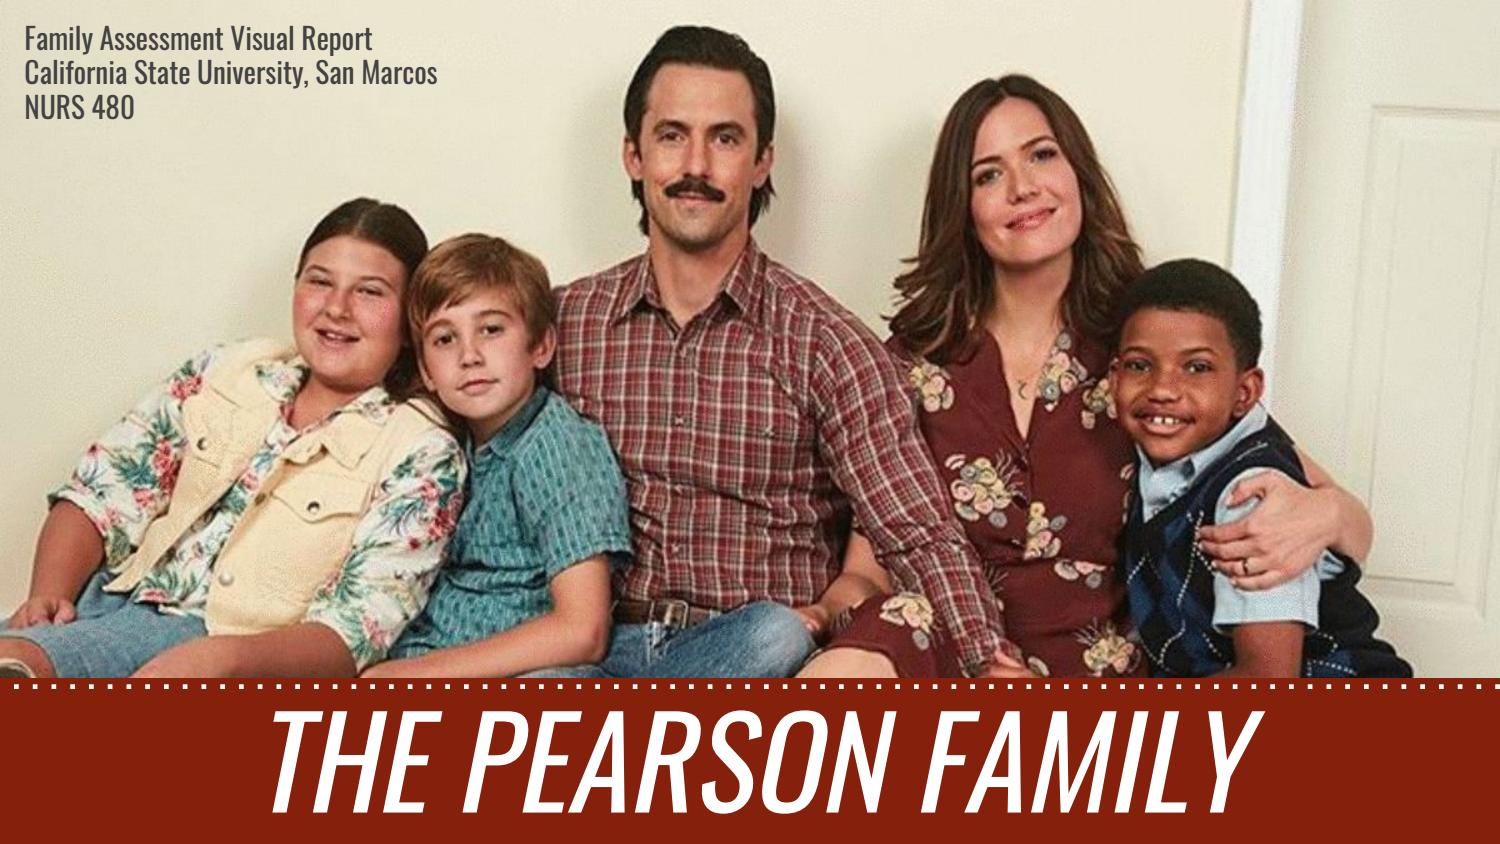 N480 Family Nursing Visual Report: Pearson Family by jdejes - issuu